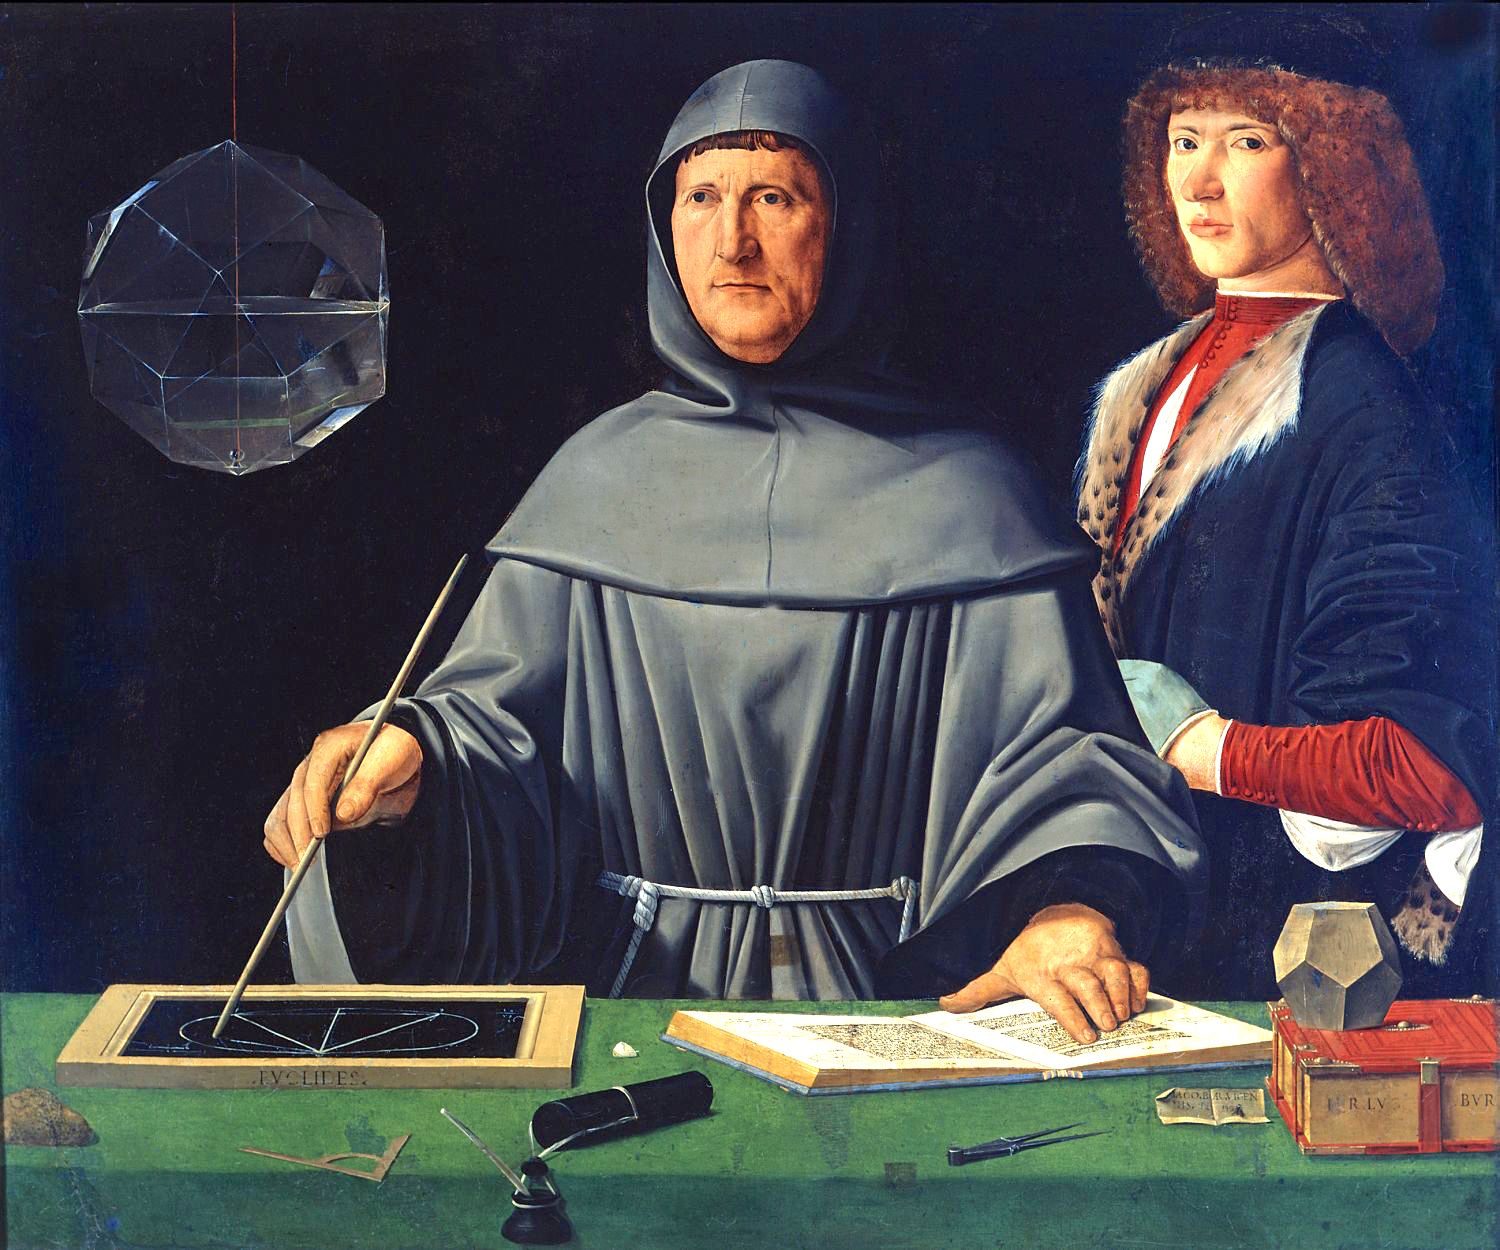 Ritratto di Frà Luca Pacioli (1495). Luca Pacioli (1445 - 1517) is the central figure in this painting exhibited in the Museo e Gallerie di Capodimonte in Napoli (Italy). The painter is unknown, although some people are convinced the painter is Jacopo de#39; Barbari (1440-1515).